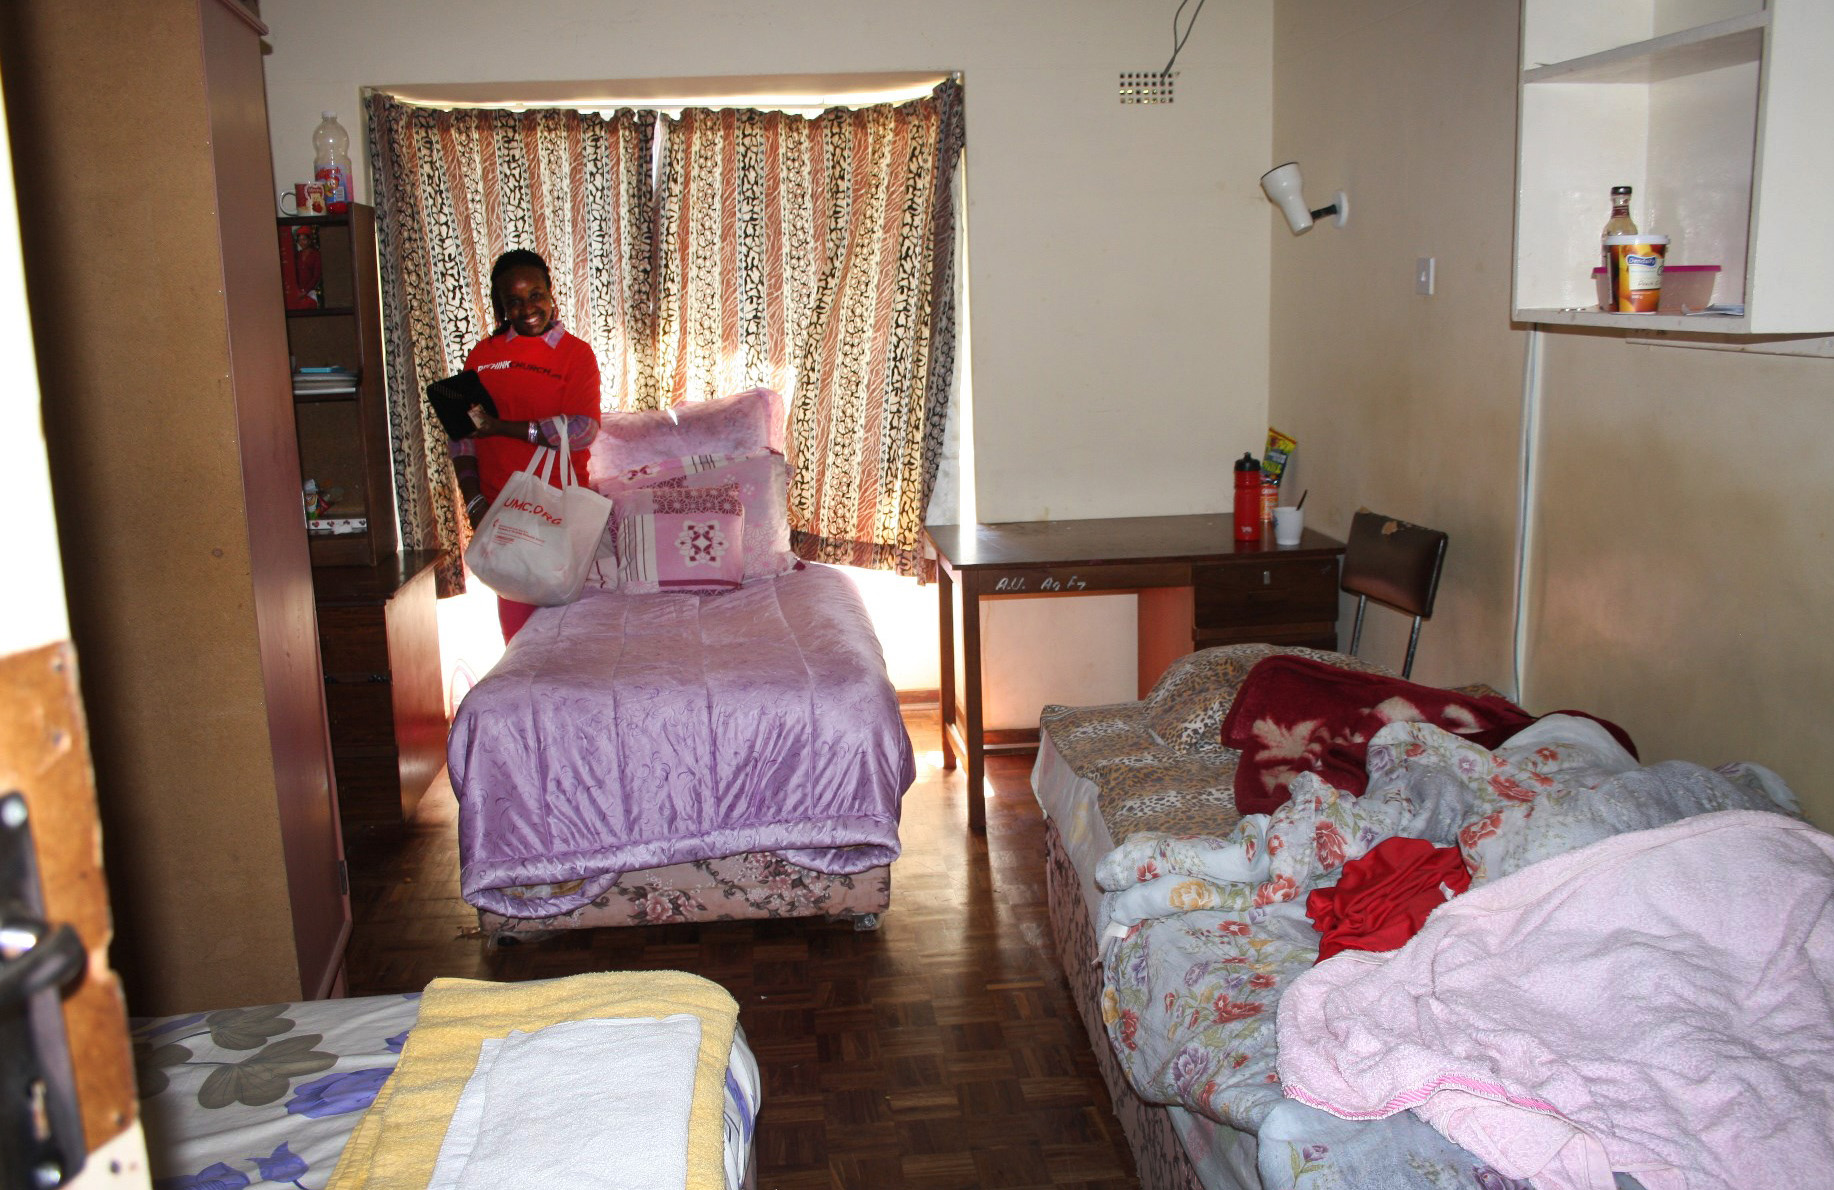 Three beds are visible in Tapiwawashe Muganyura's room in one of the women's residence halls at Africa University. The board of directors encouraged Vice Chancellor Munashe Furusa to come up with a plan to renovate the aging buildings and build new ones. Photo by Vicki Brown, UMNS